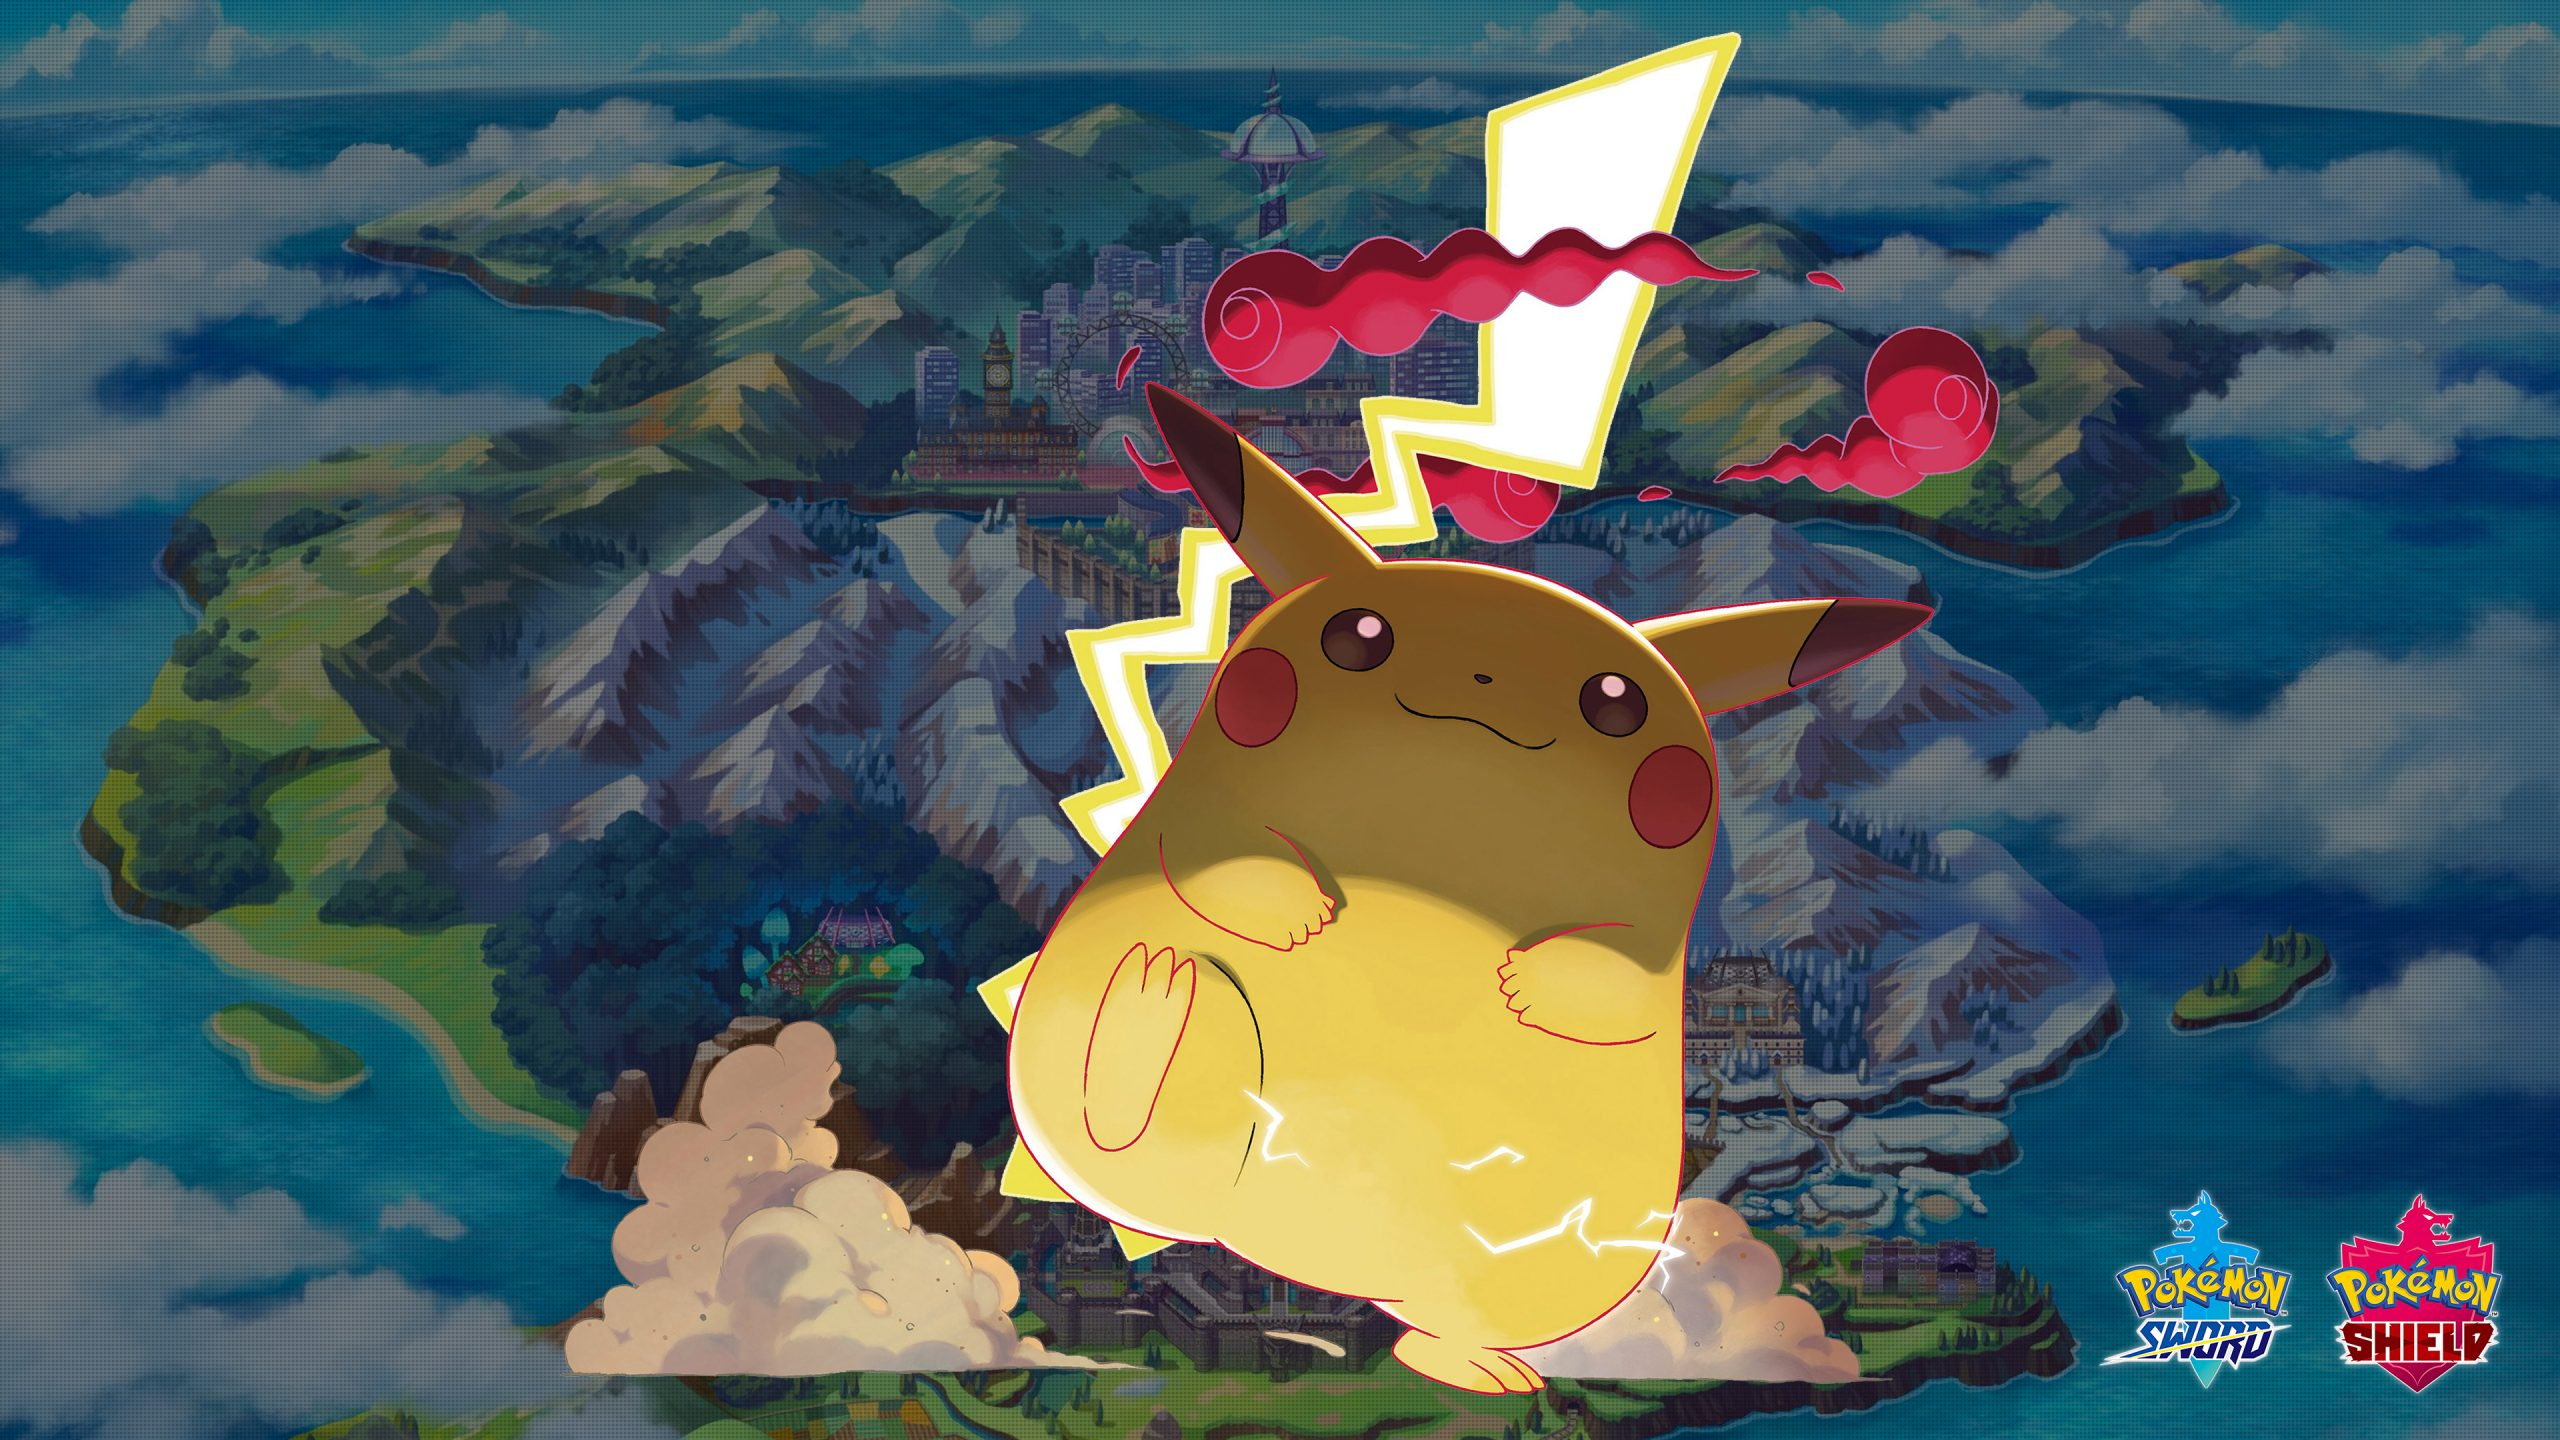 Pokemon Sword And Shield Gigantamax Pikachu Wallpapers Cat With